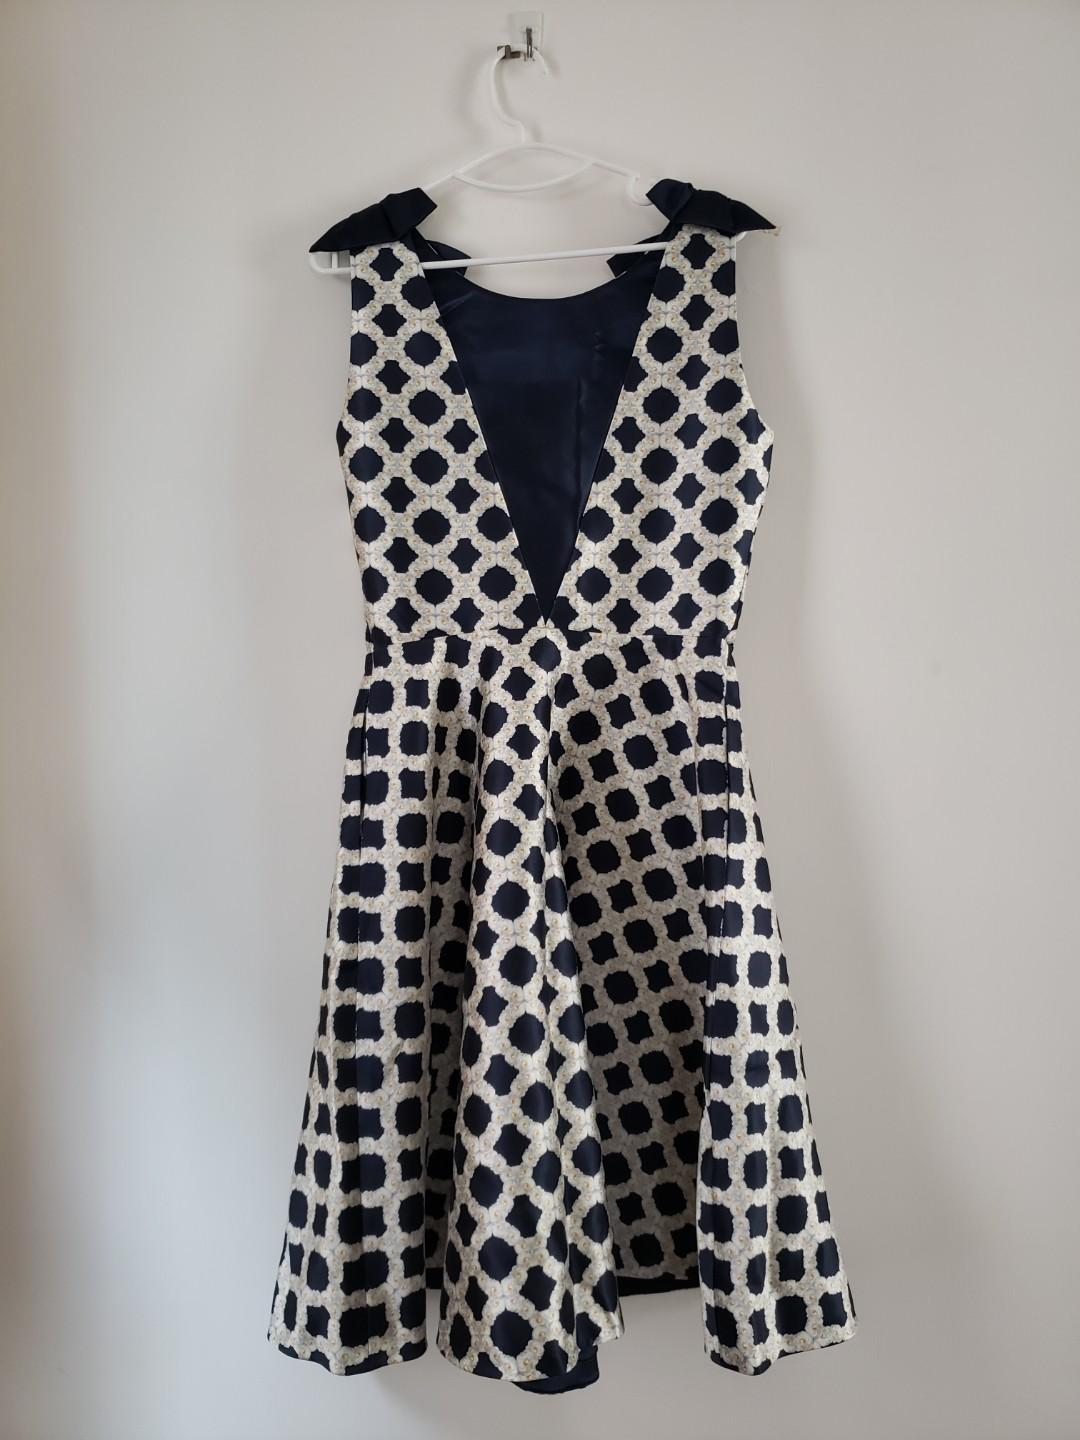 Ted Baker dress 連身裙